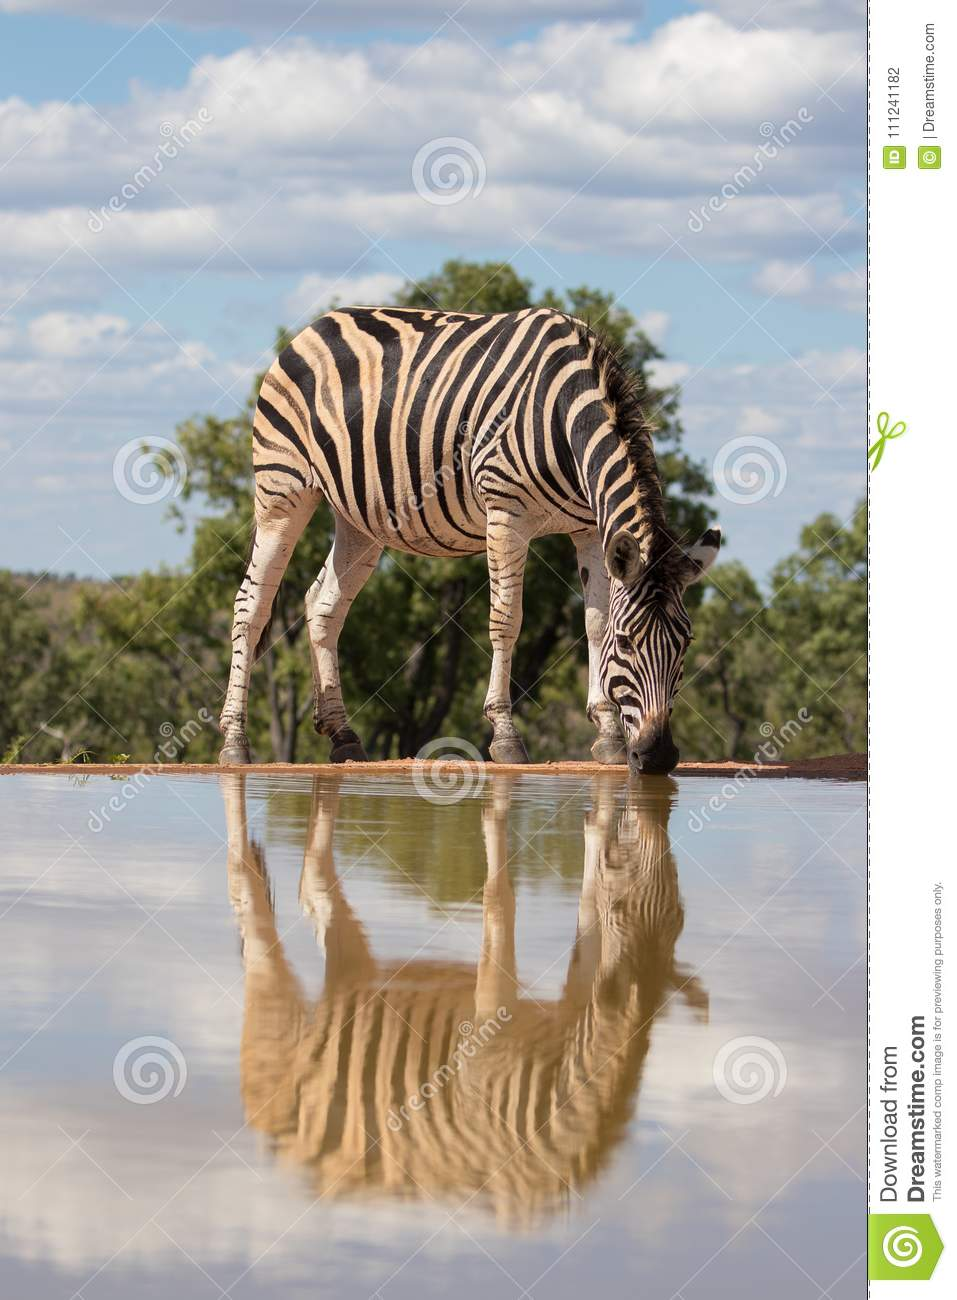 Zebra ( Equus Burchelli) drinking at the water hole with reflection. Welgevonden, South Africa.